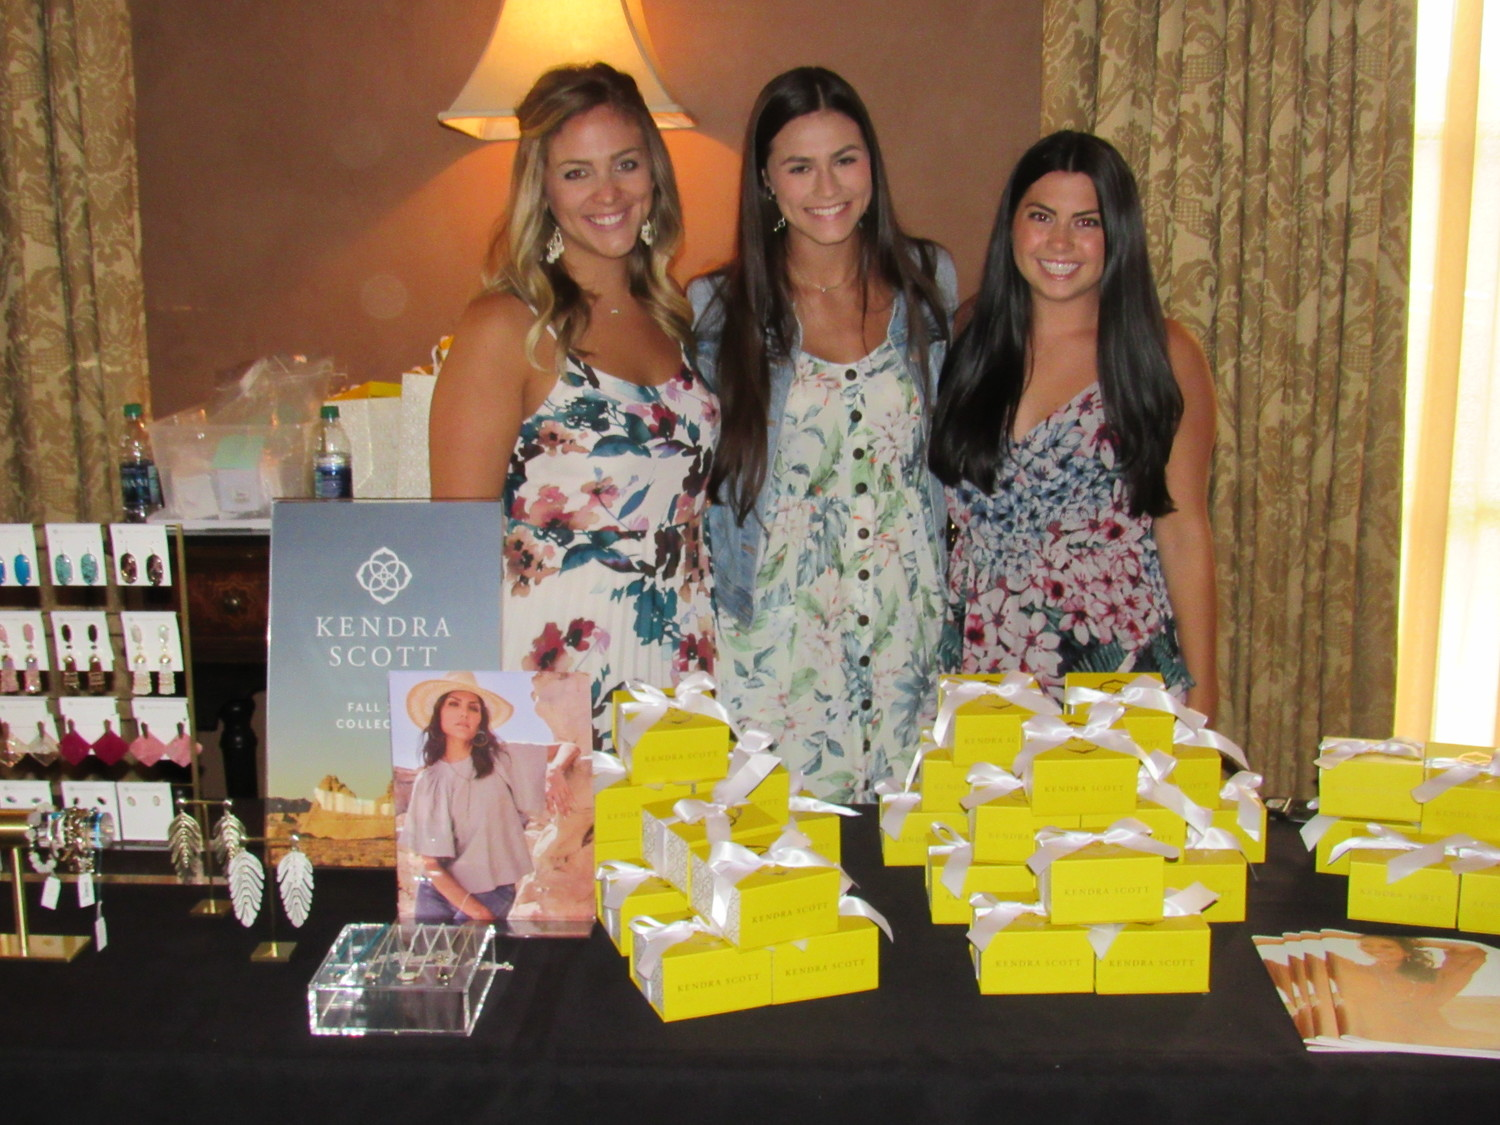 Lexi Lahiff, Morgan Slaughter and Brittany Fowler sell Kendra Scott products at the event to benefit Nemours.